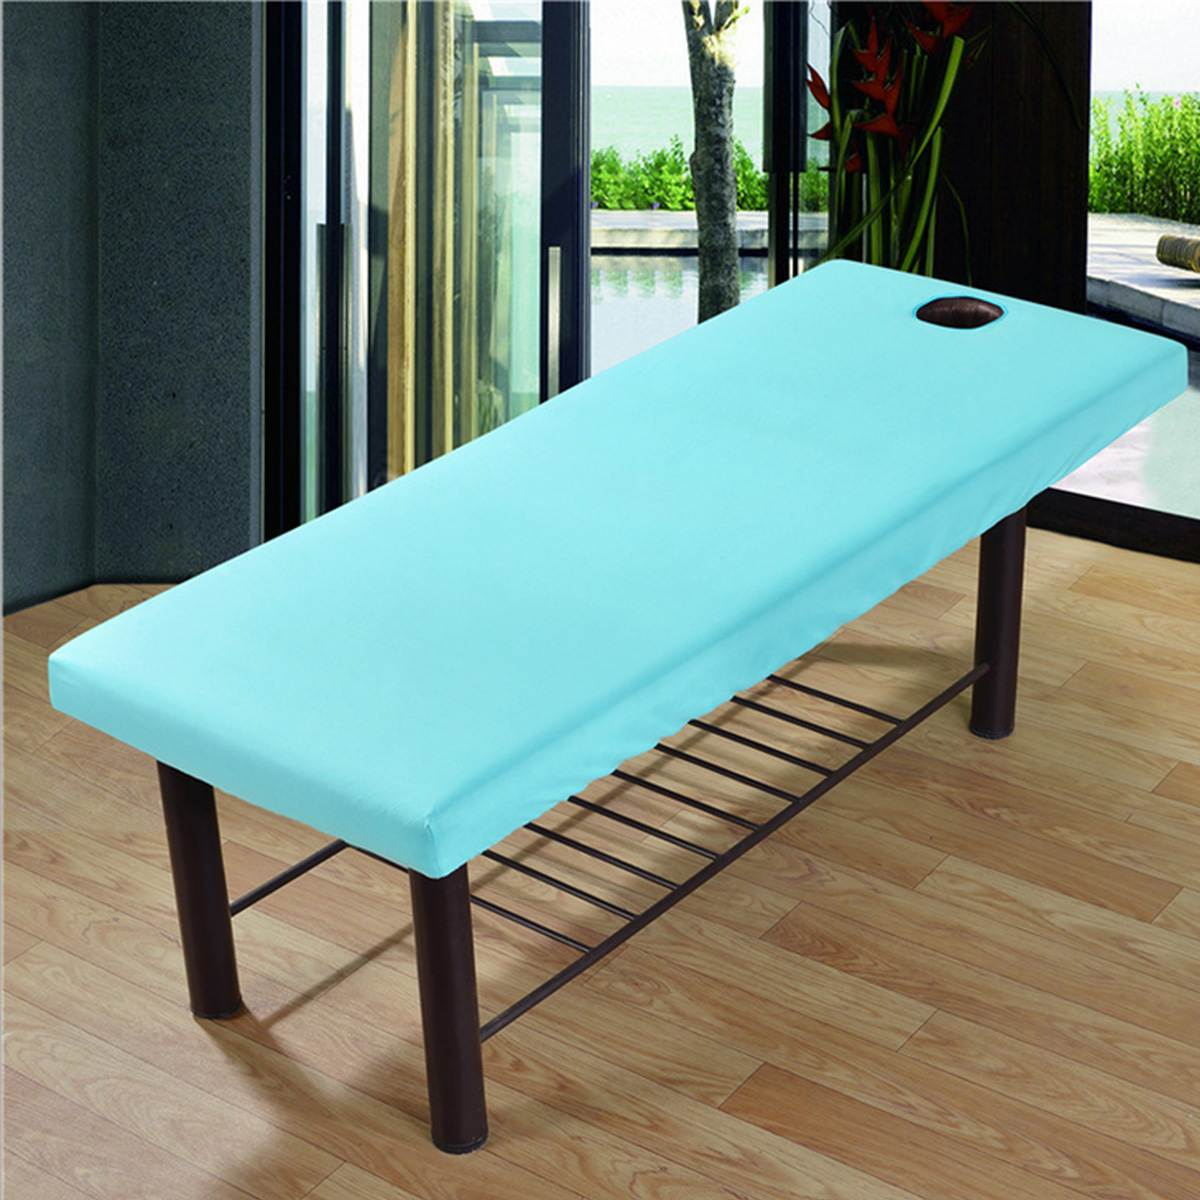 Soft Polyester Massage Bed Cover Beauty Salon Massage Sheet Body SPA Treatment Relaxation Bedsheet With Face Breath Hole 12